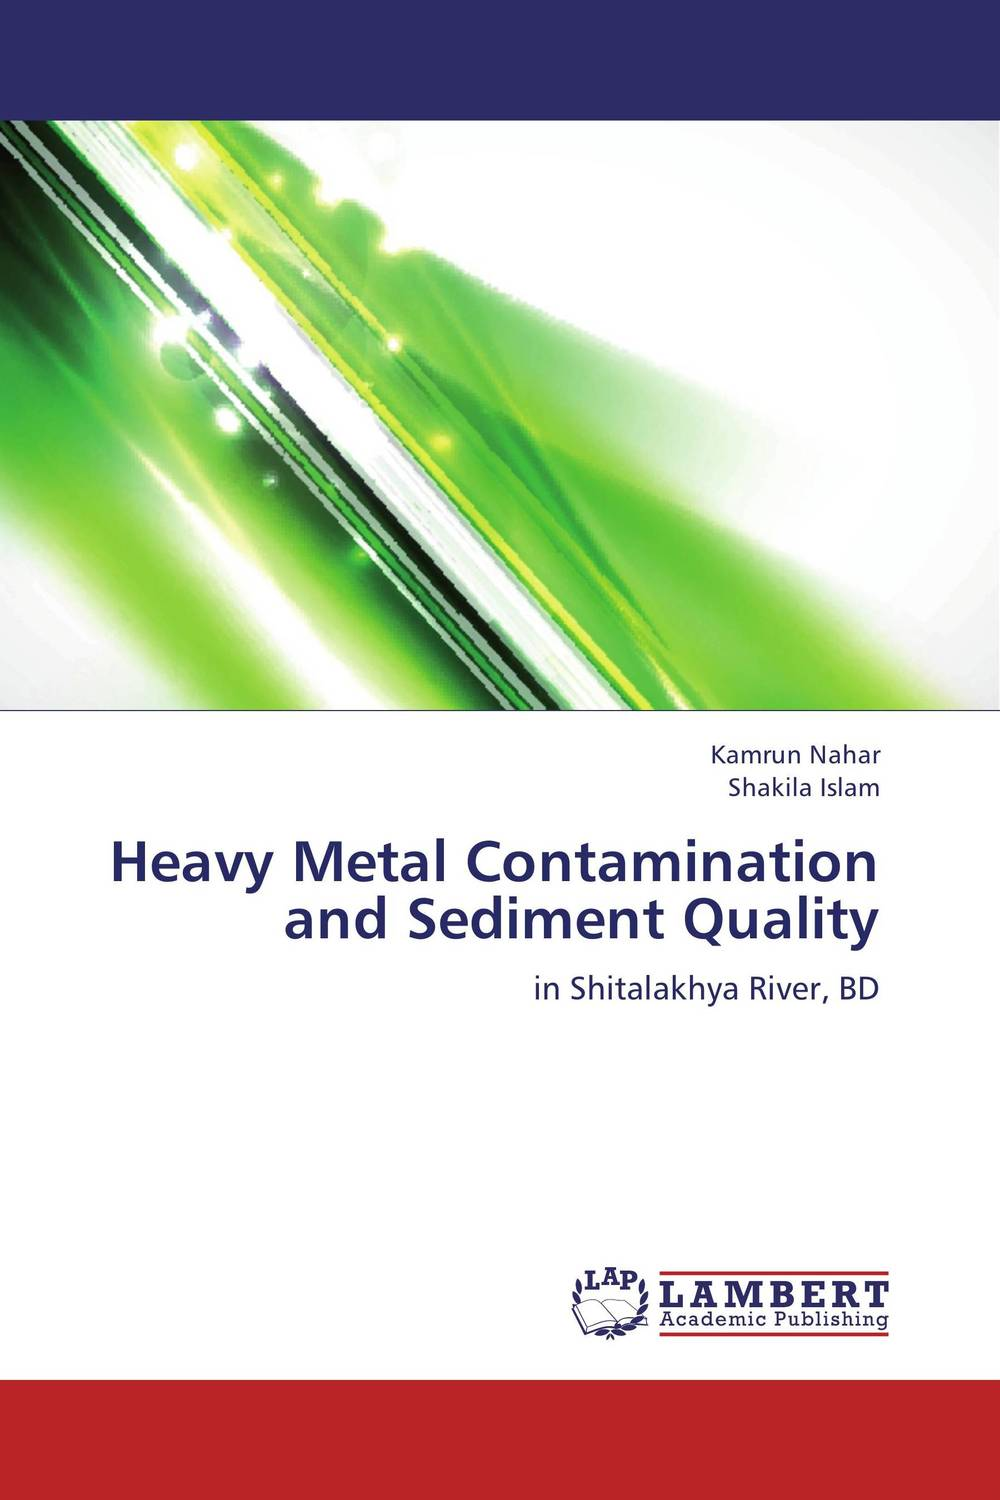 Heavy Metal Contamination and Sediment Quality